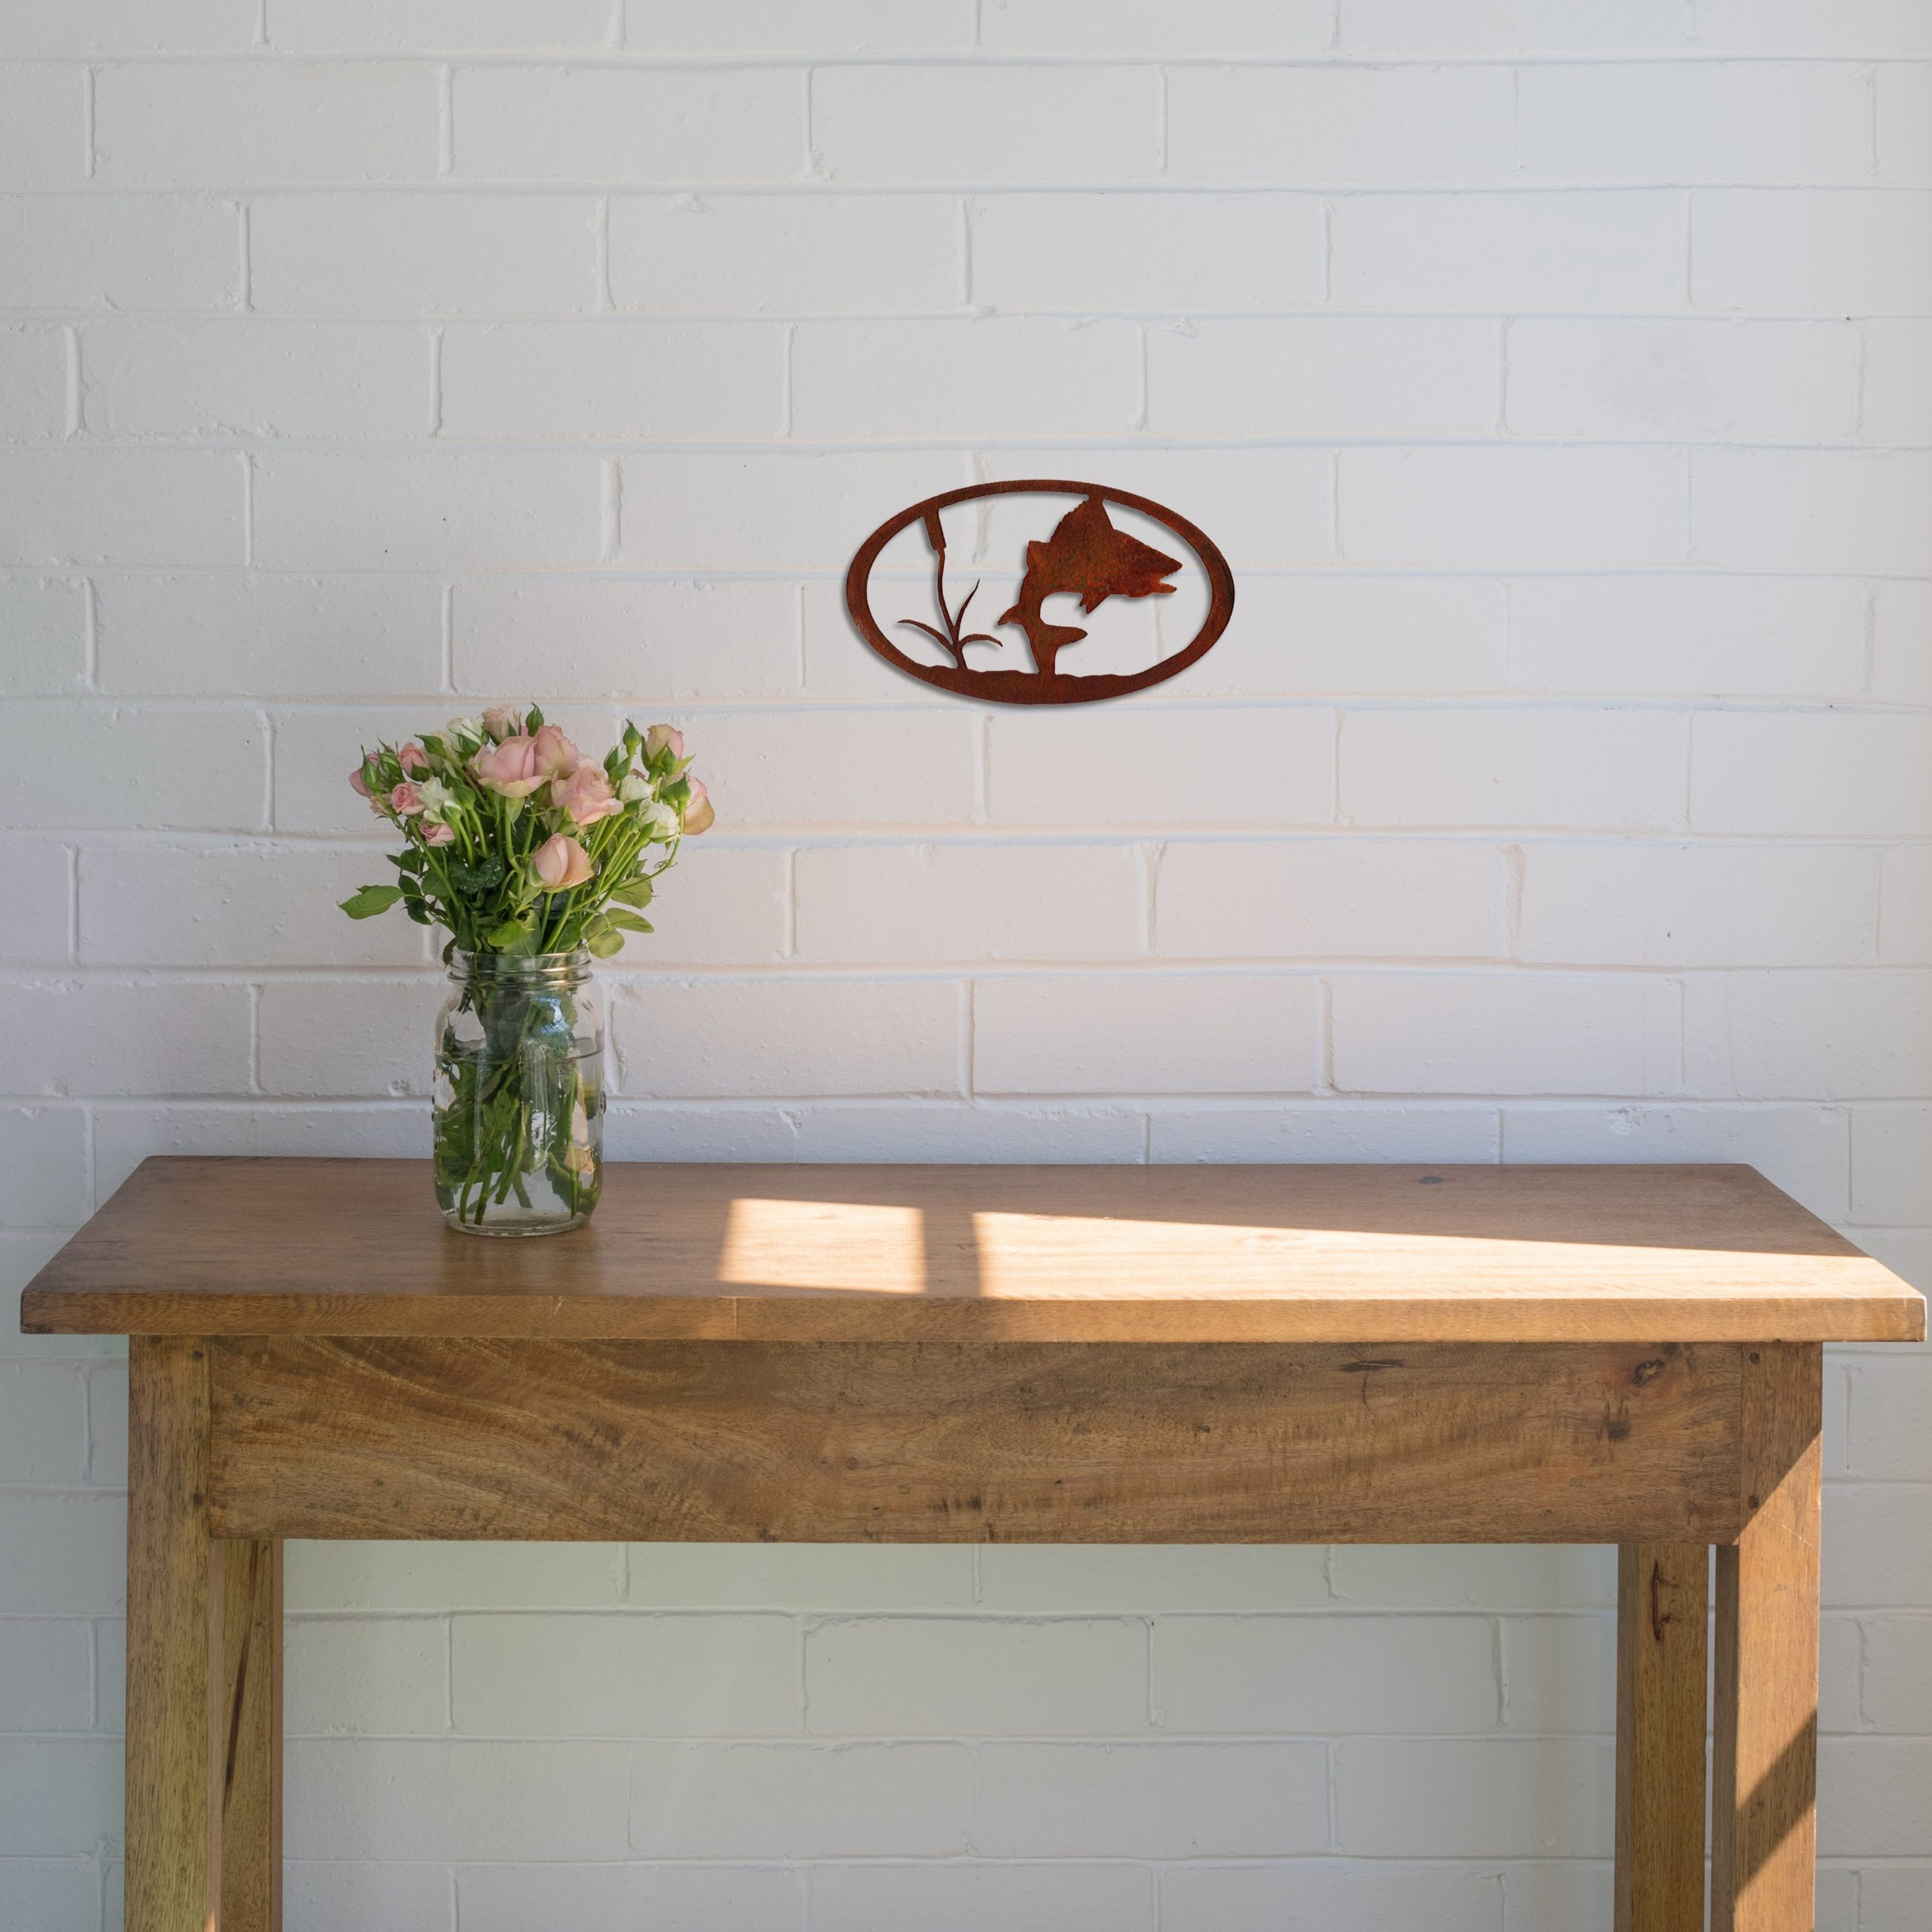 rust-turning-fish-oval-over-table-scaled